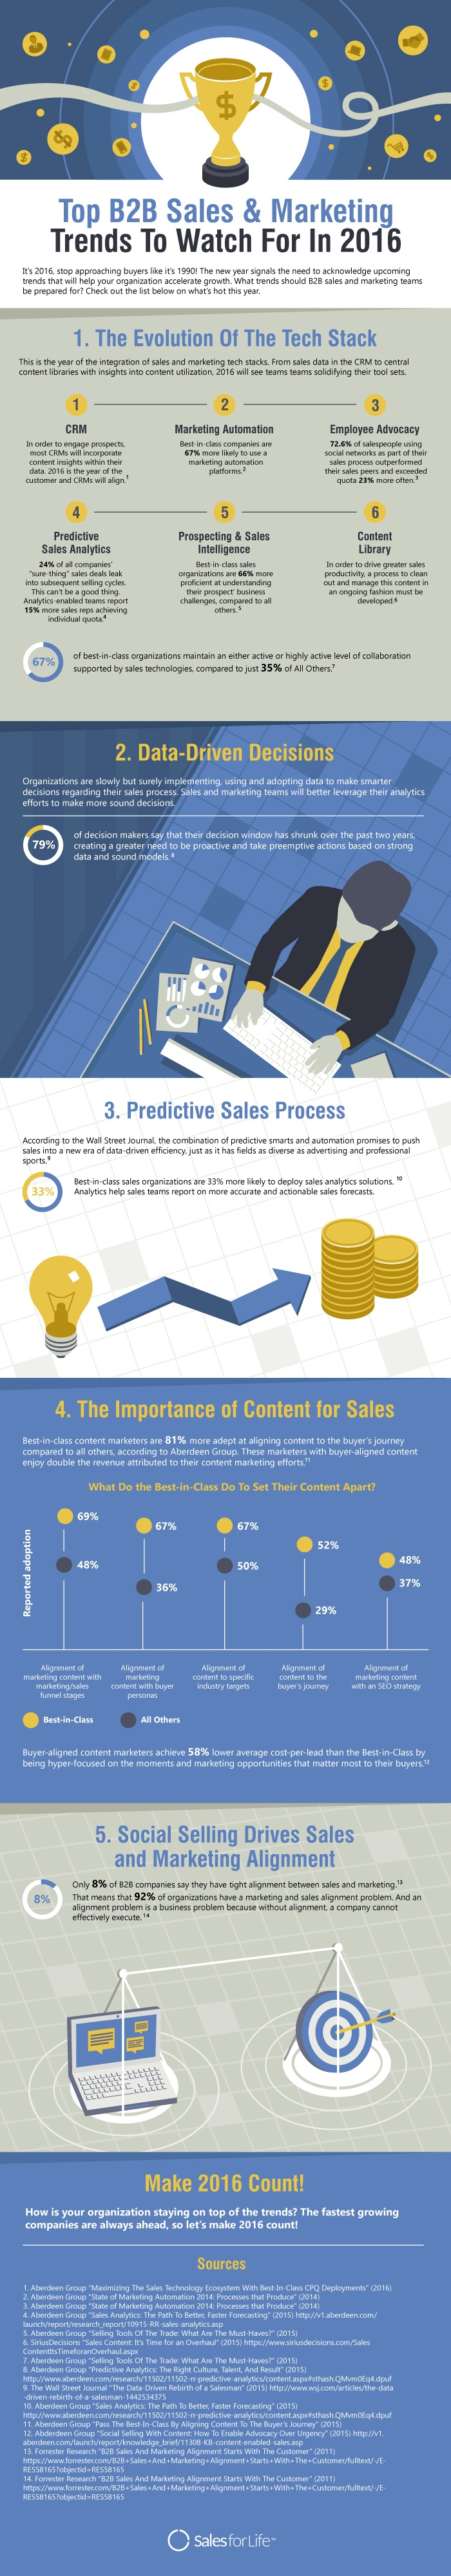 sales-marketing-trends-2016-infographic.jpg